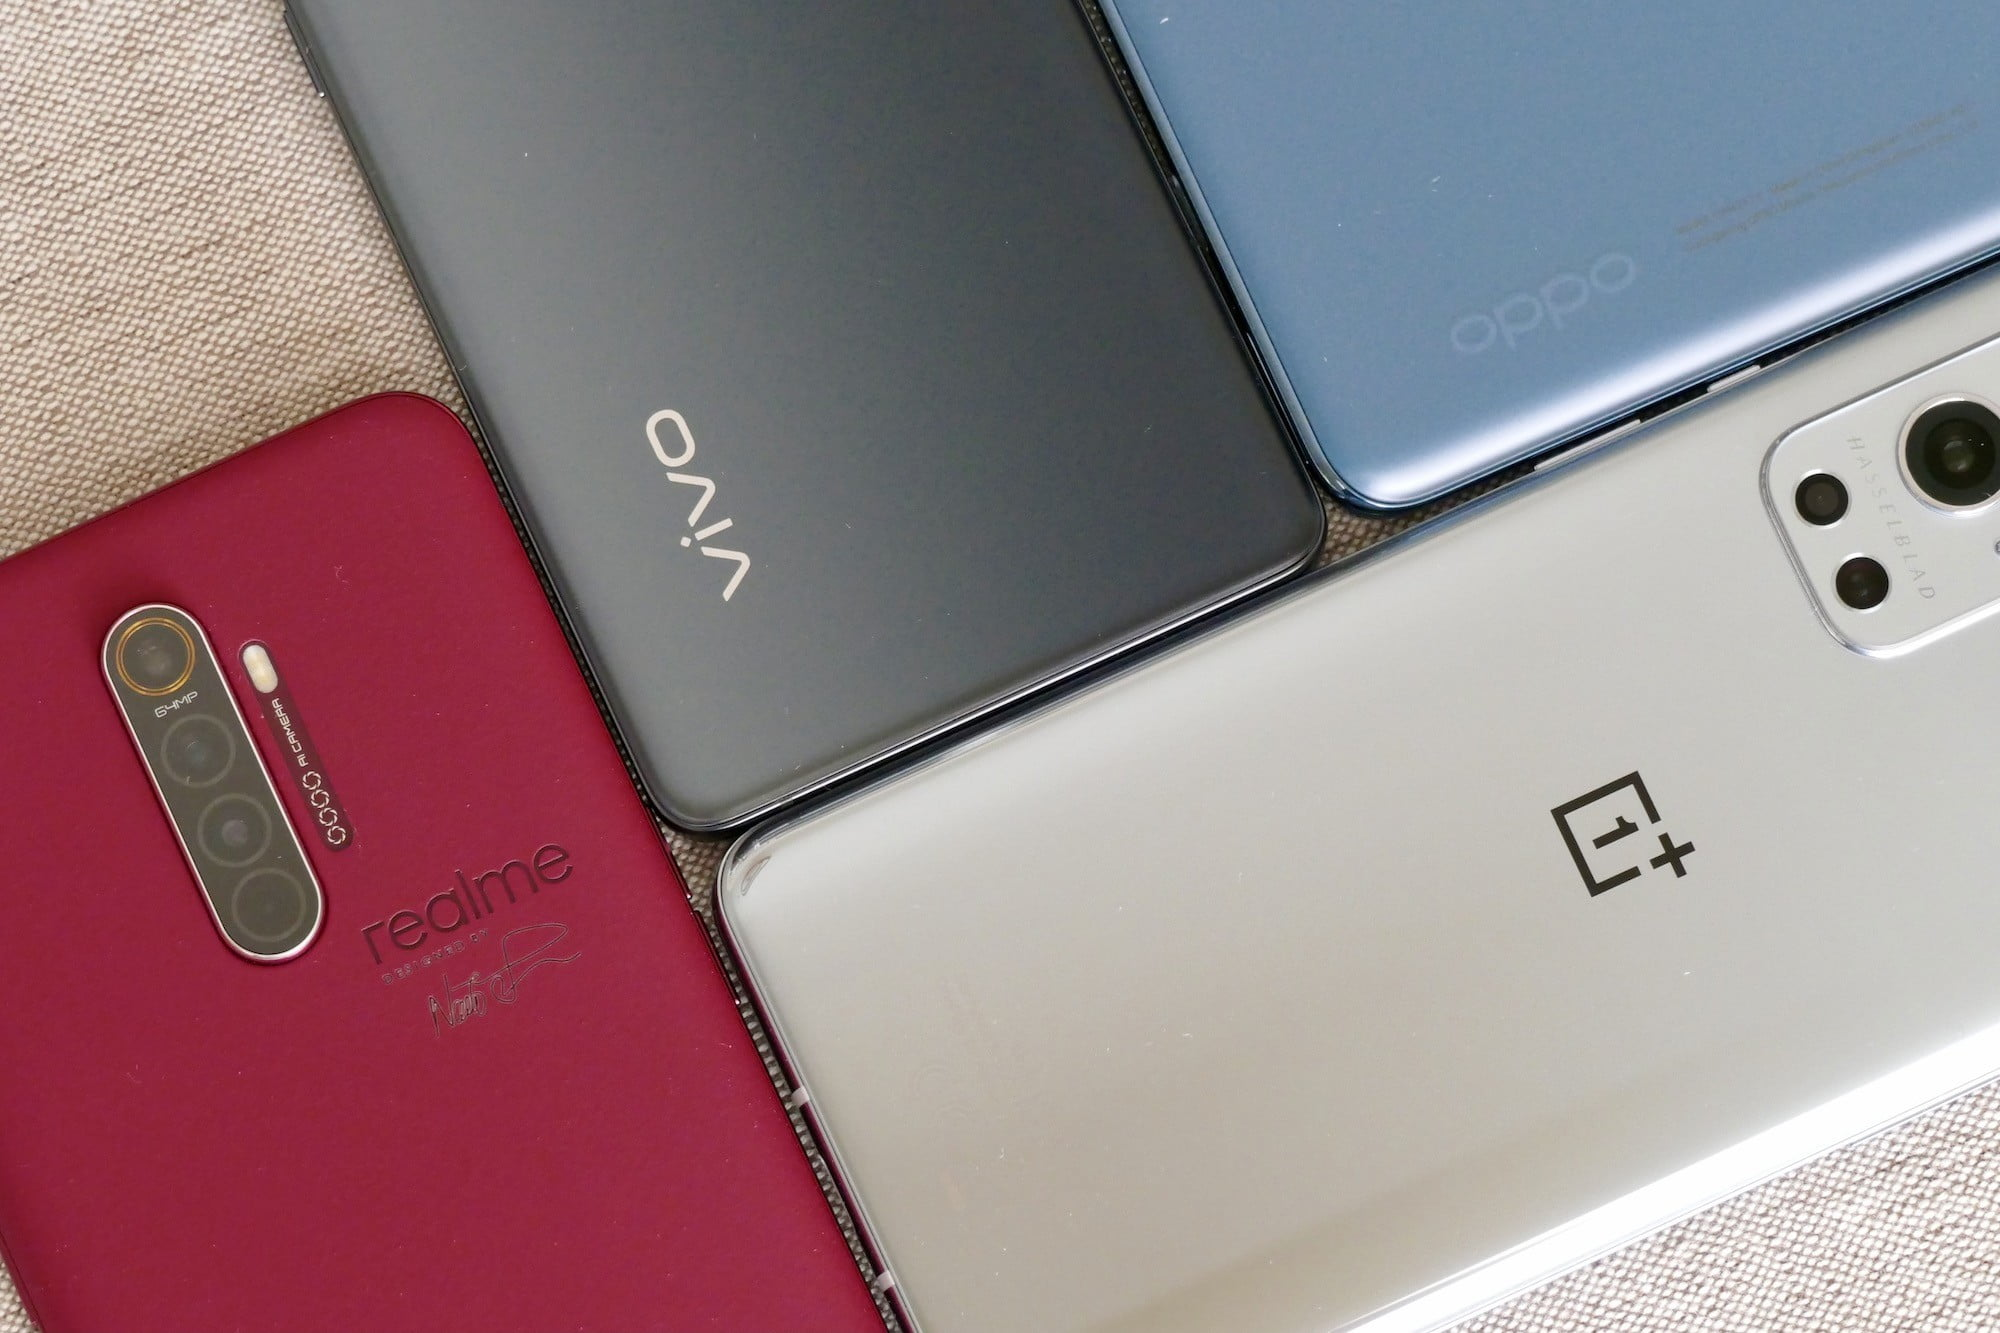 Oppo, Realme, Vivo, and OnePlus are in the midst of an identity crisis